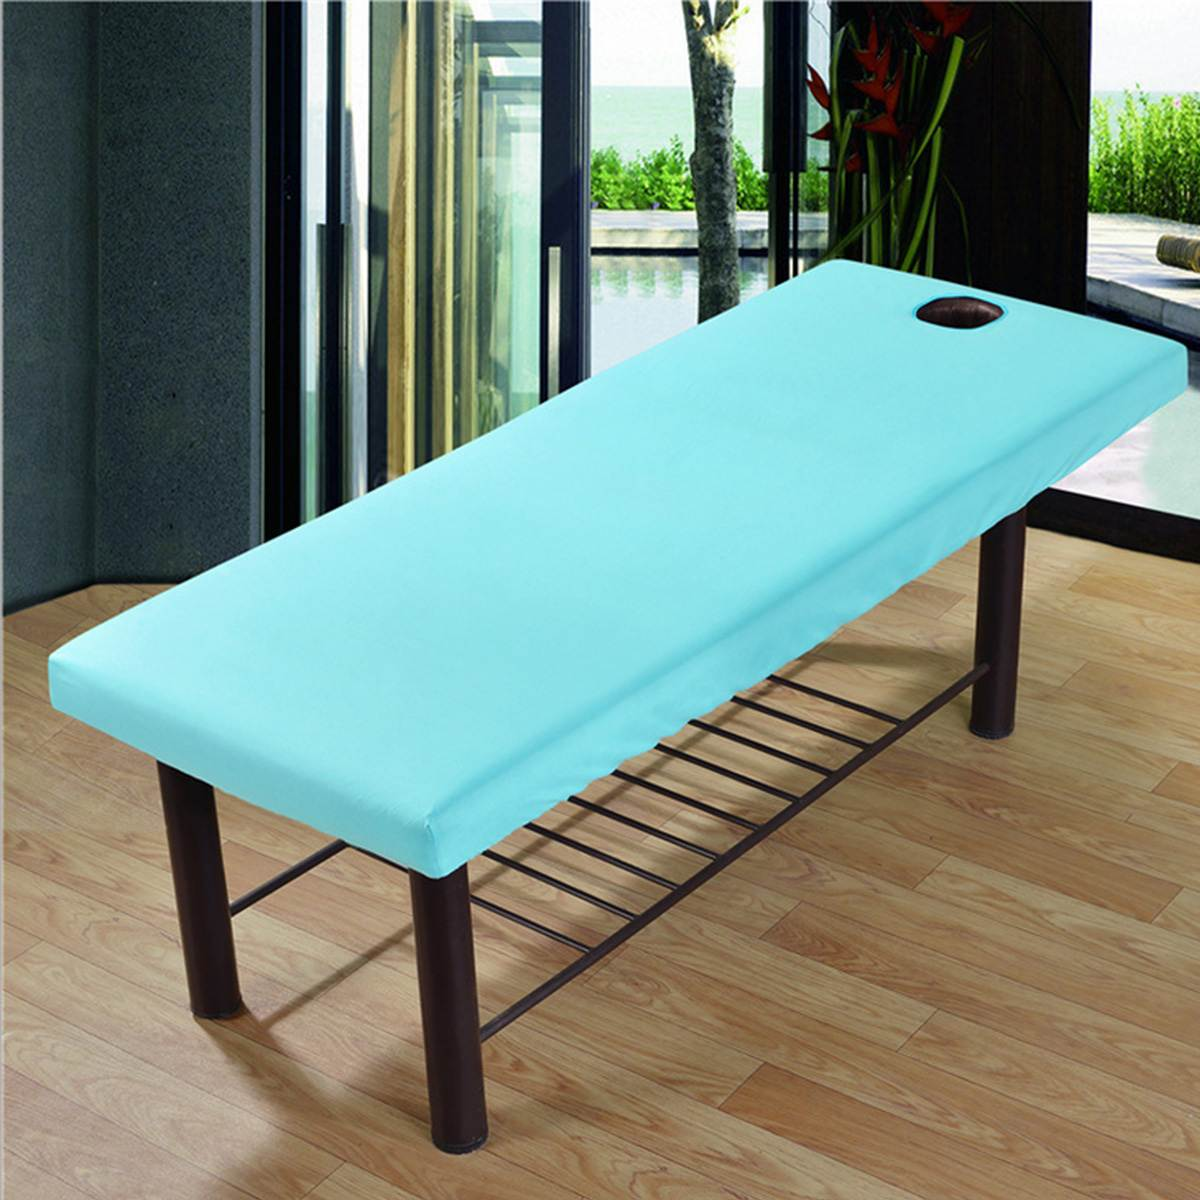 Soft Polyester Massage Bed Cover Beauty Salon Massage Sheet Body SPA Treatment Relaxation Bedsheet With Face Breath Hole 4